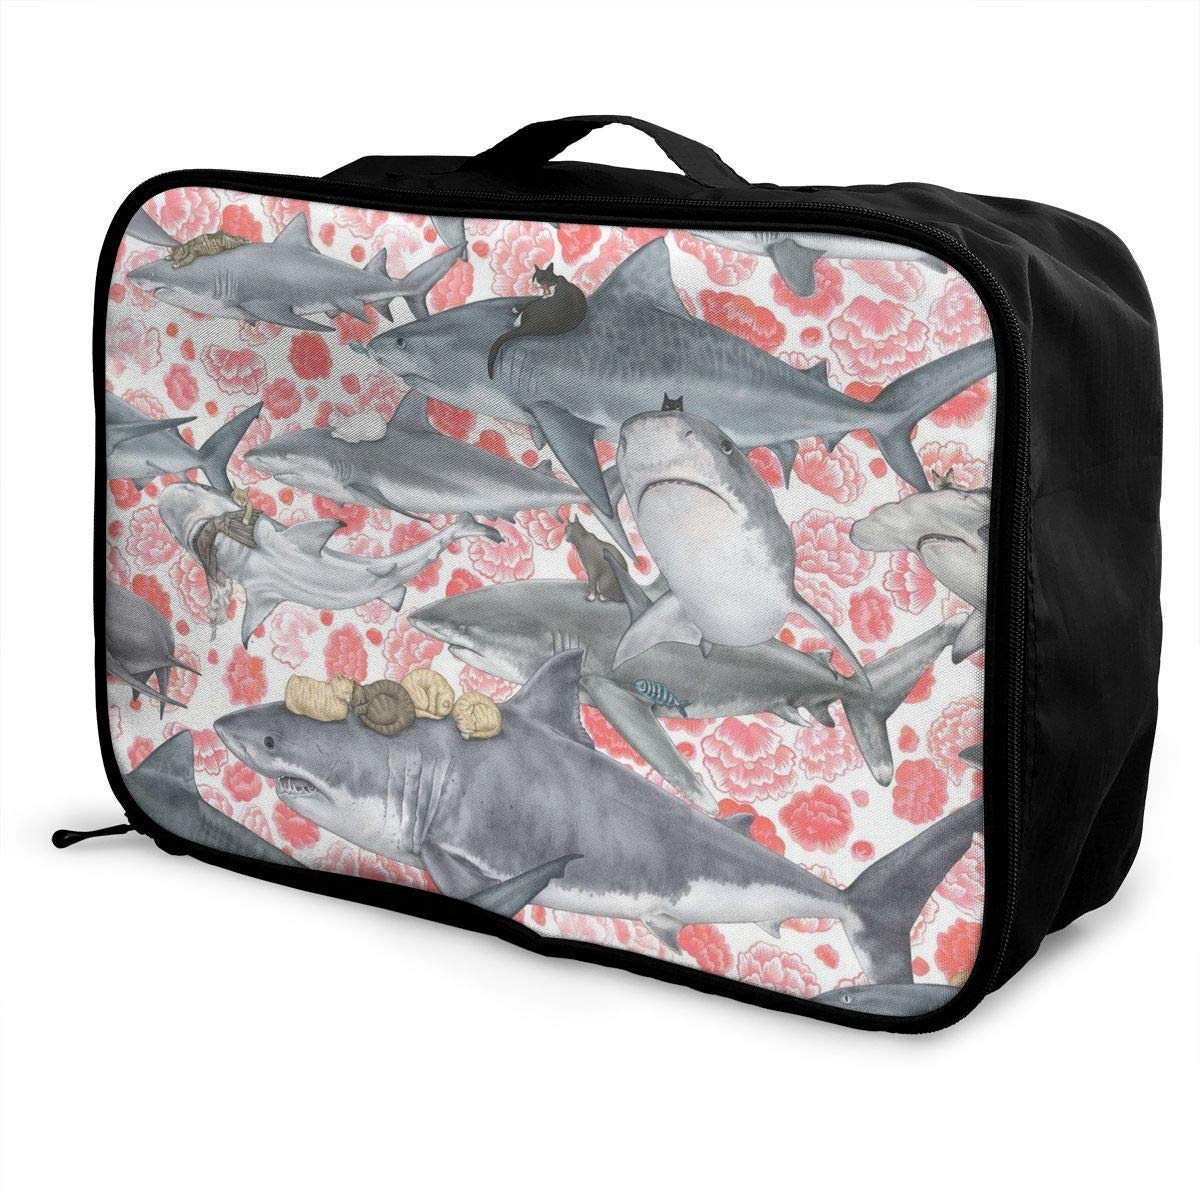 Cats Riding Sharks Pirate Pink Flowers Floral Travel Lightweight Waterproof Foldable Storage Carry Luggage Duffle Tote Bag JTRVW Luggage Bags for Travel